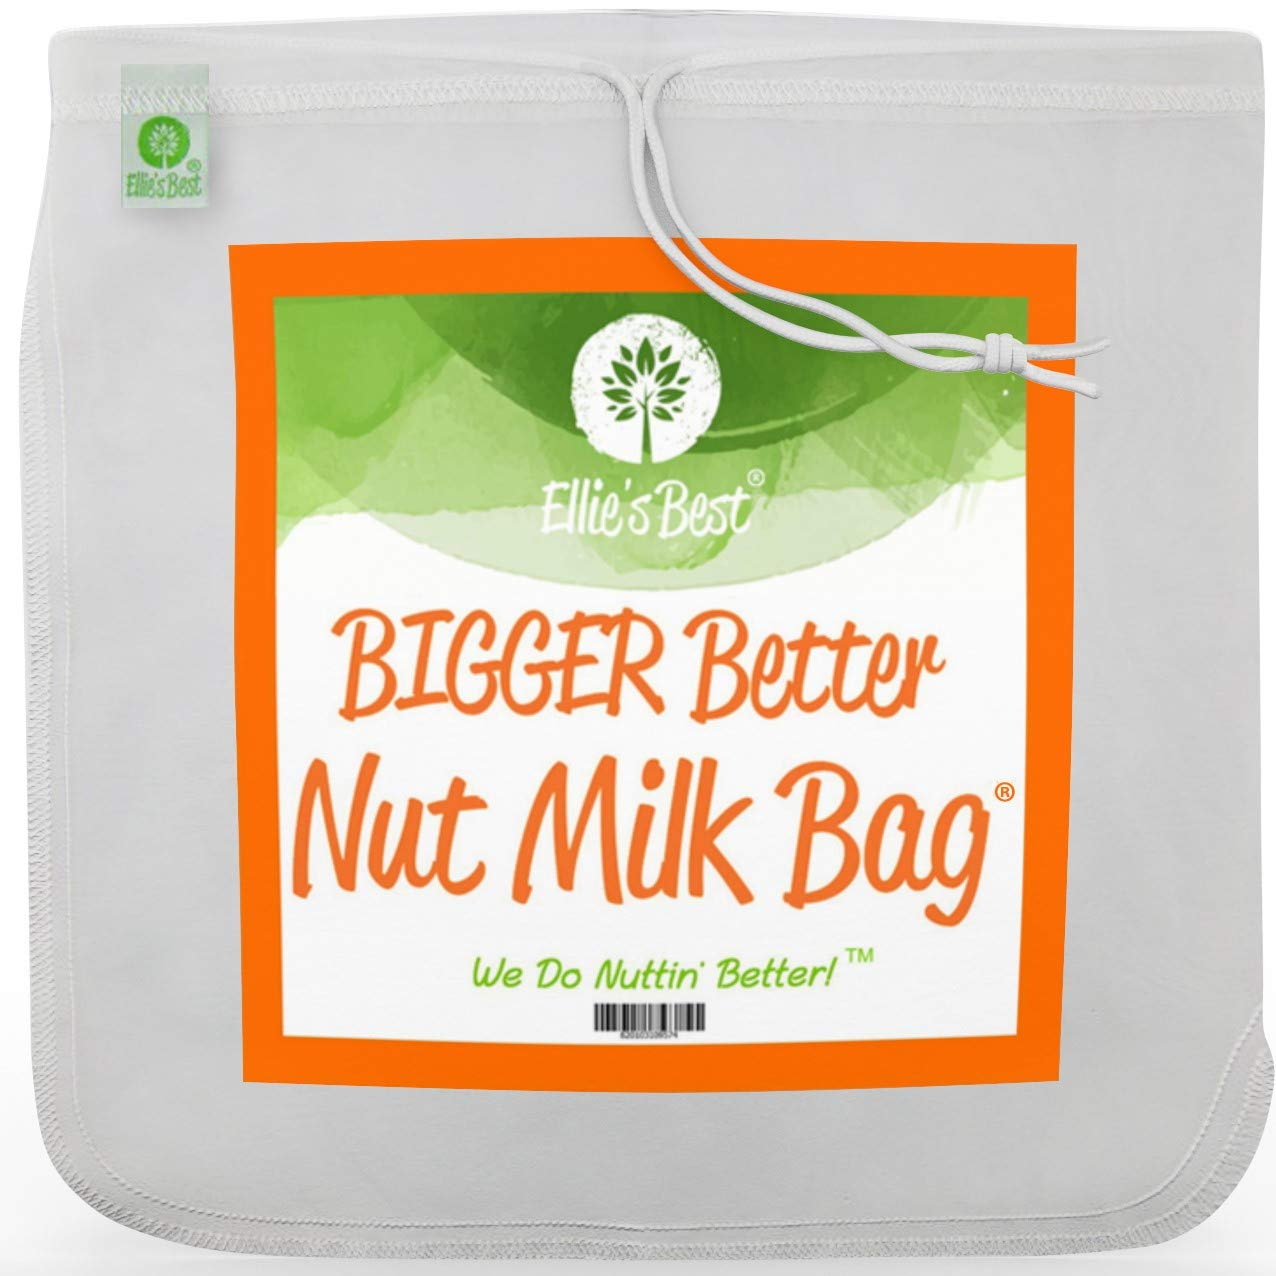 Nut Milk Bag